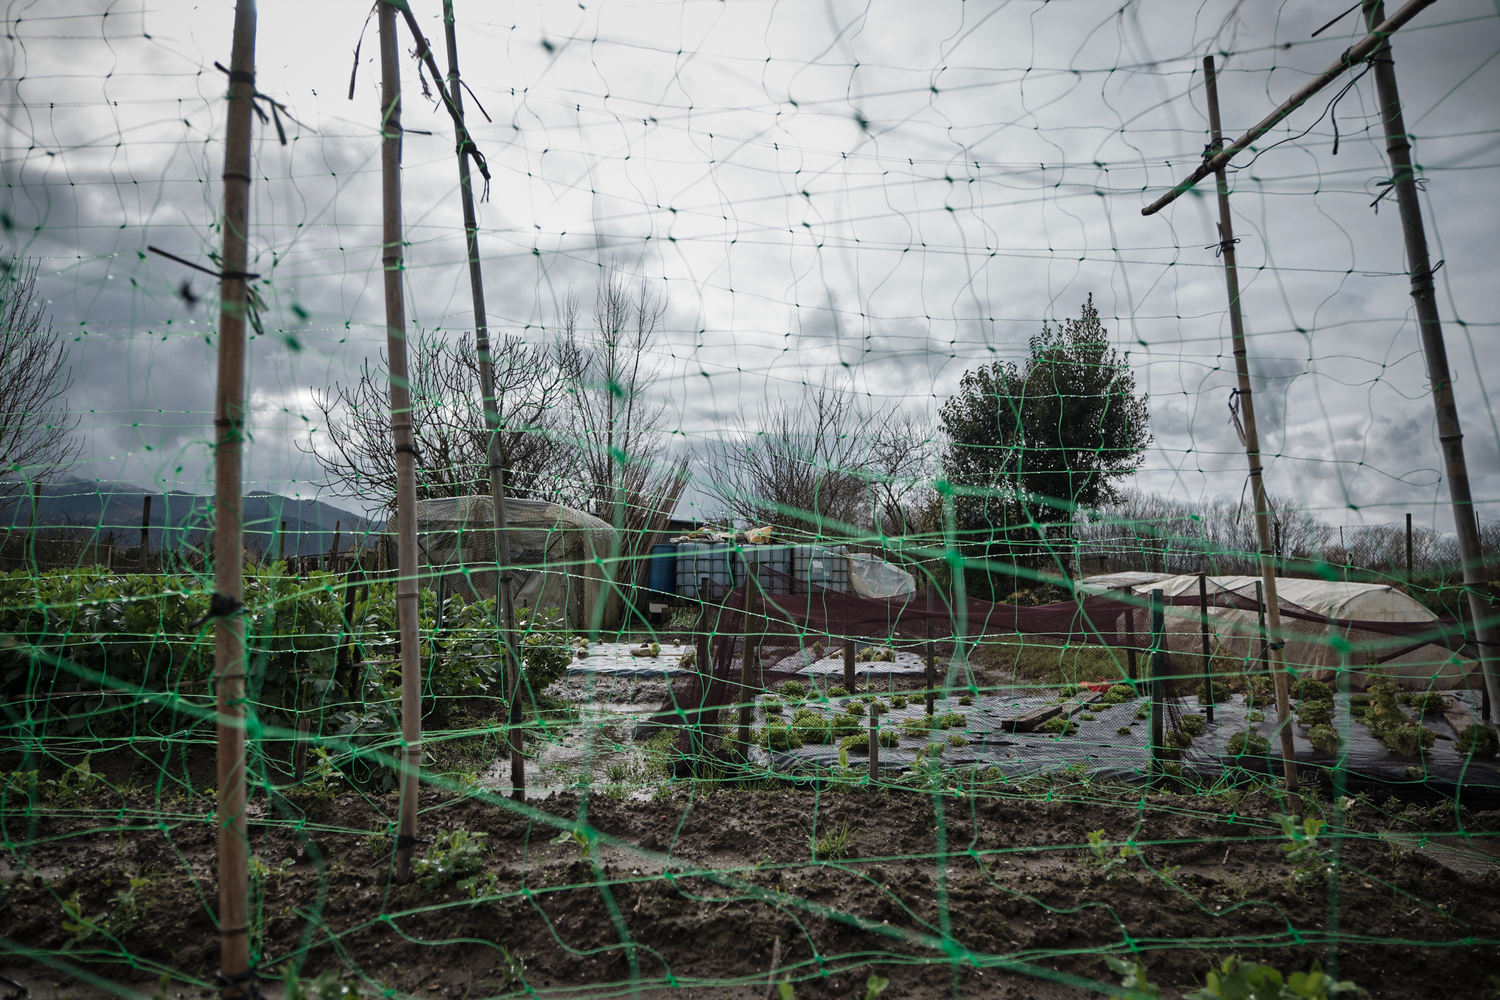 View through a net of a farm land, garden with bamboo sticks.